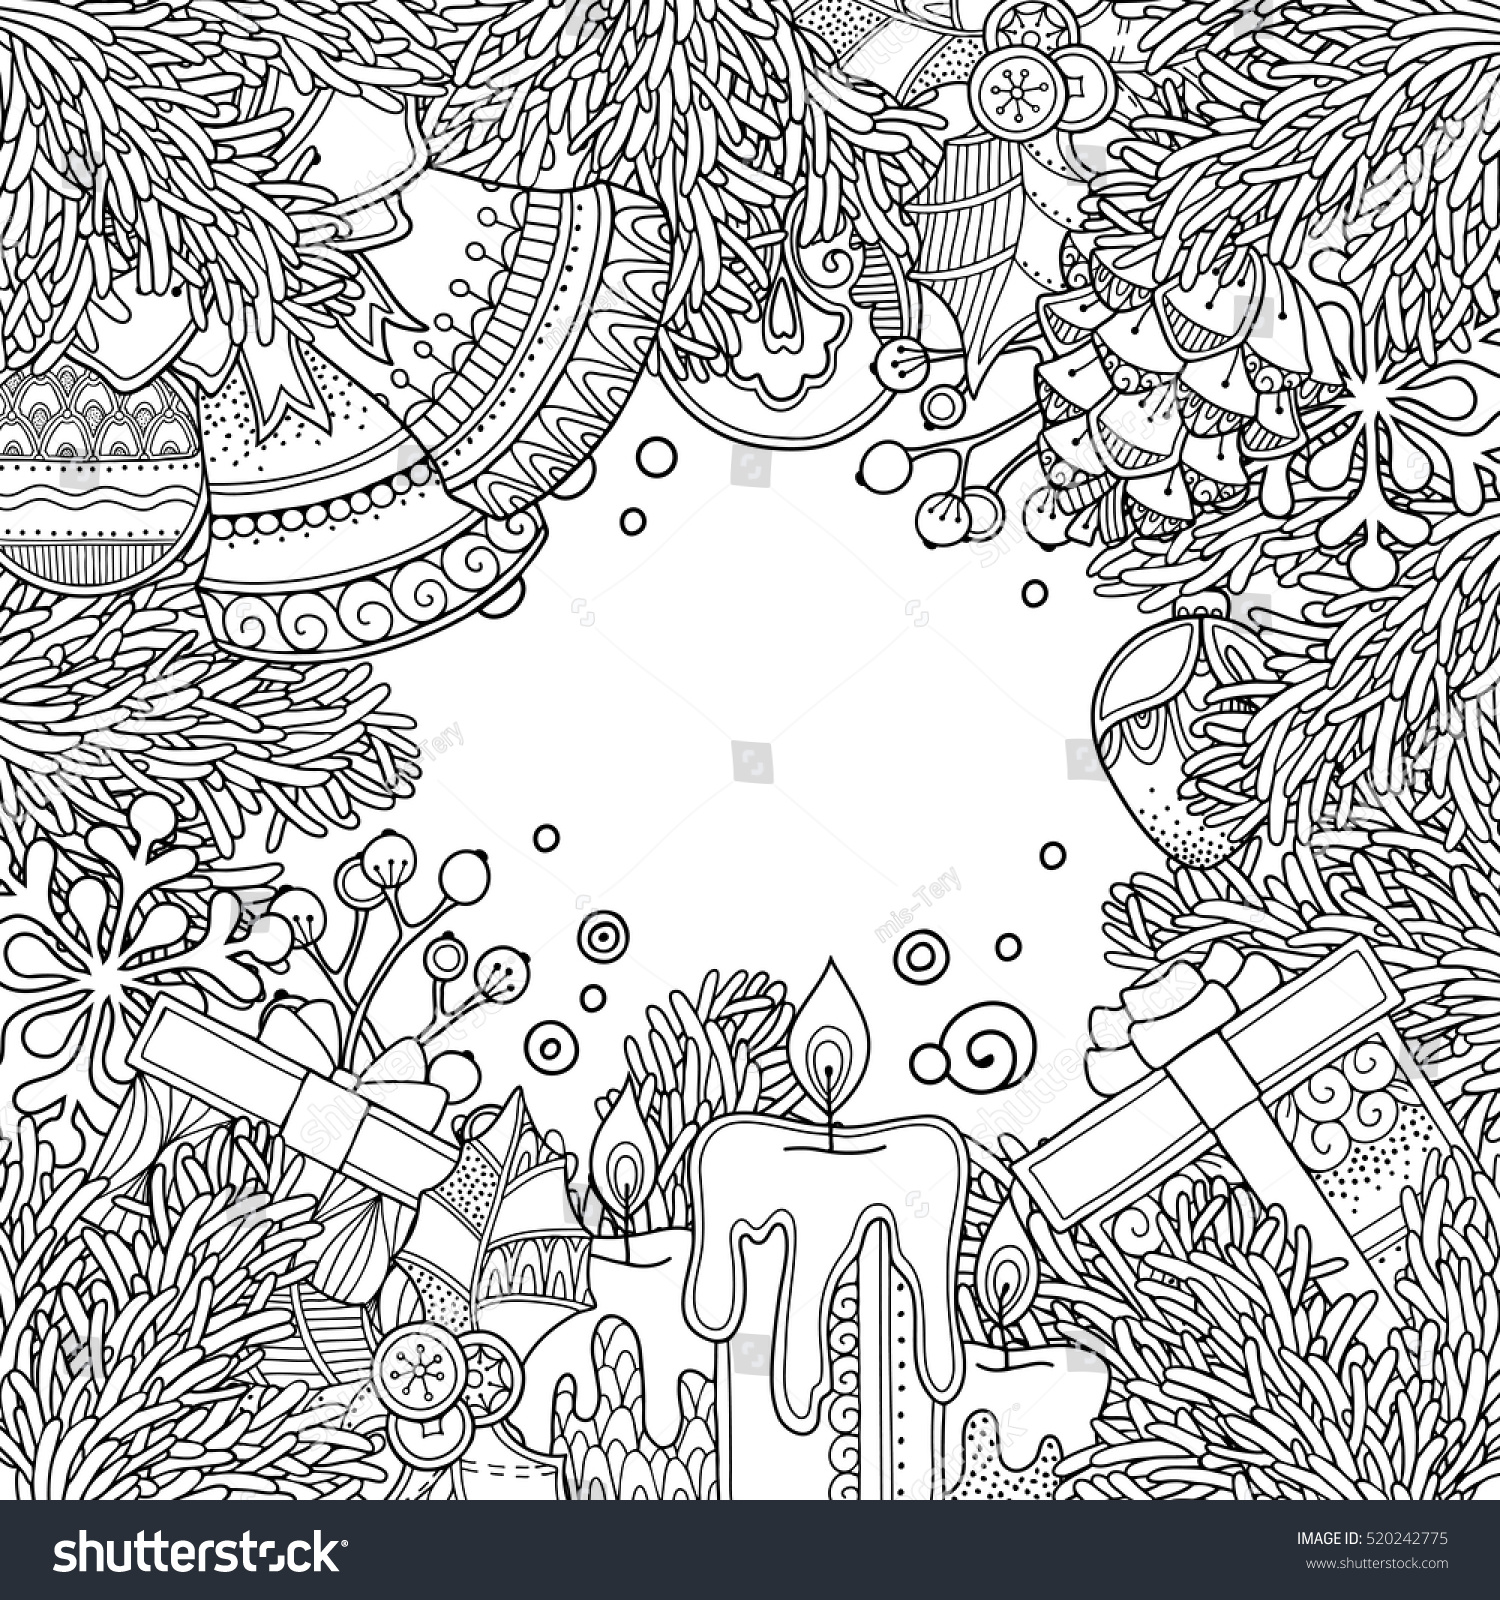 Christmas Frame Doodle Style Floral Ornate Stock Vector HD Royalty